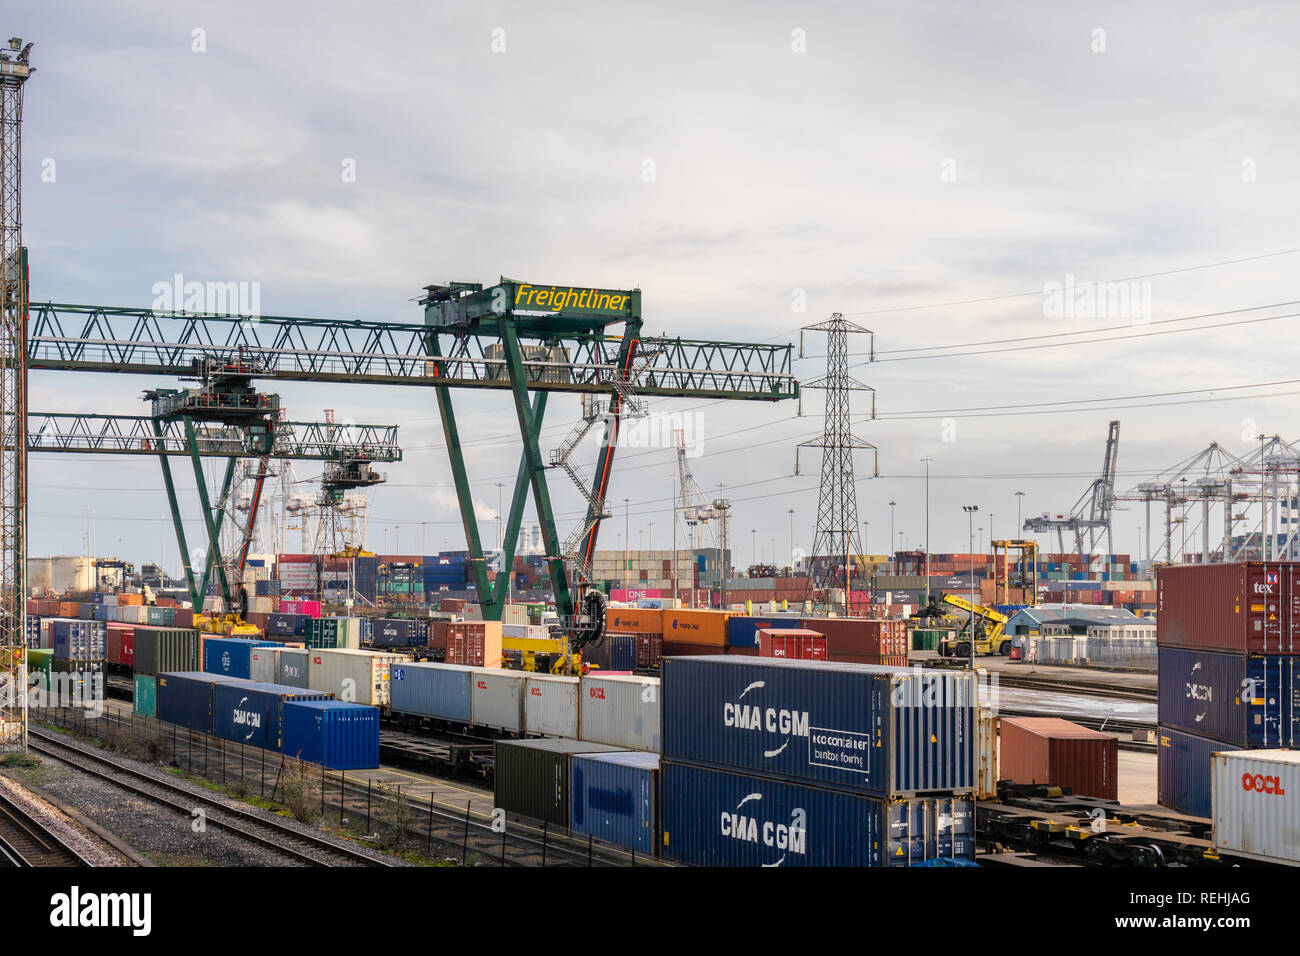 Freightliner Crane in the busy Port of Southampton at Dock Gate 20, Hampshire, Southampton Docks, England, UK - Stock Image